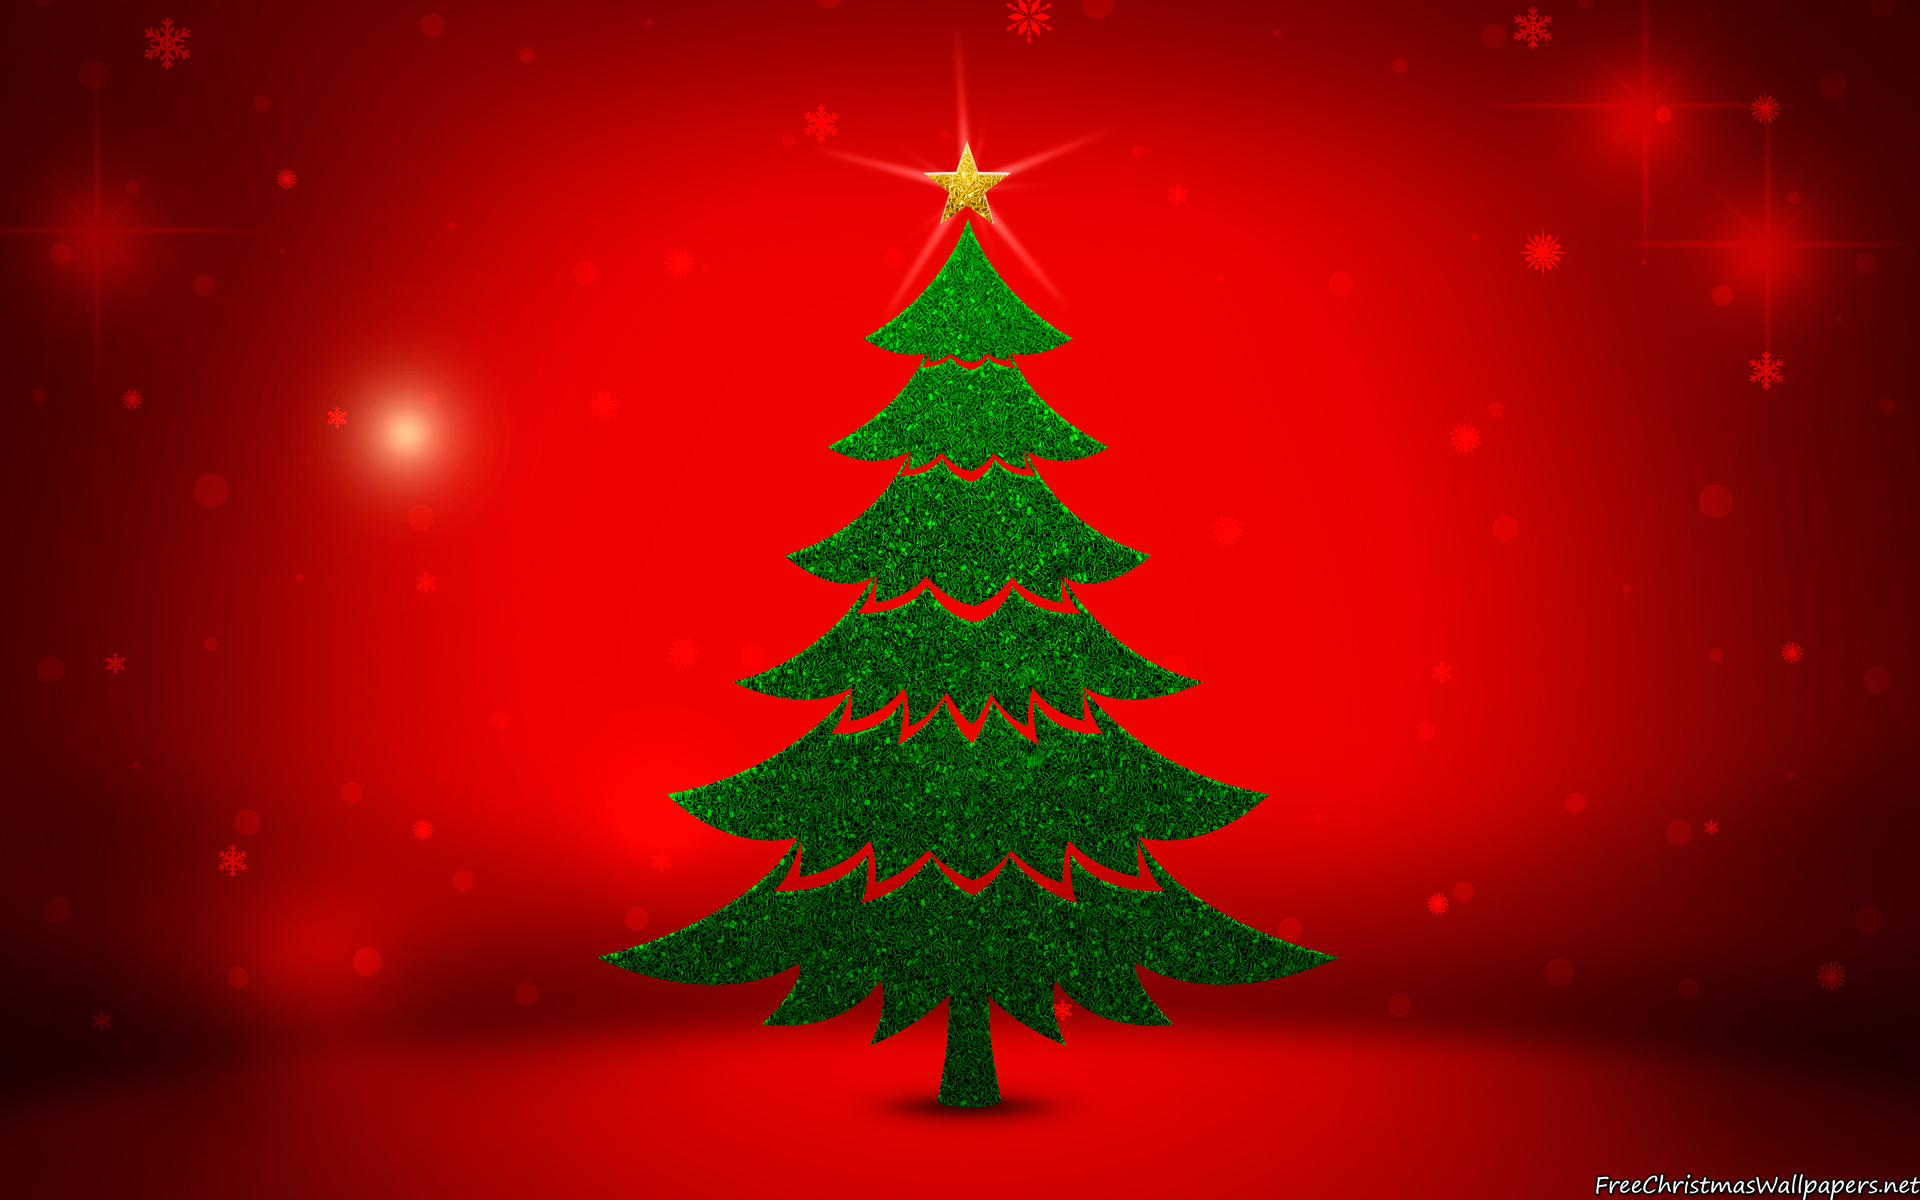 Download Christmas Tree Background 1024x768  1366x768  1920x1080